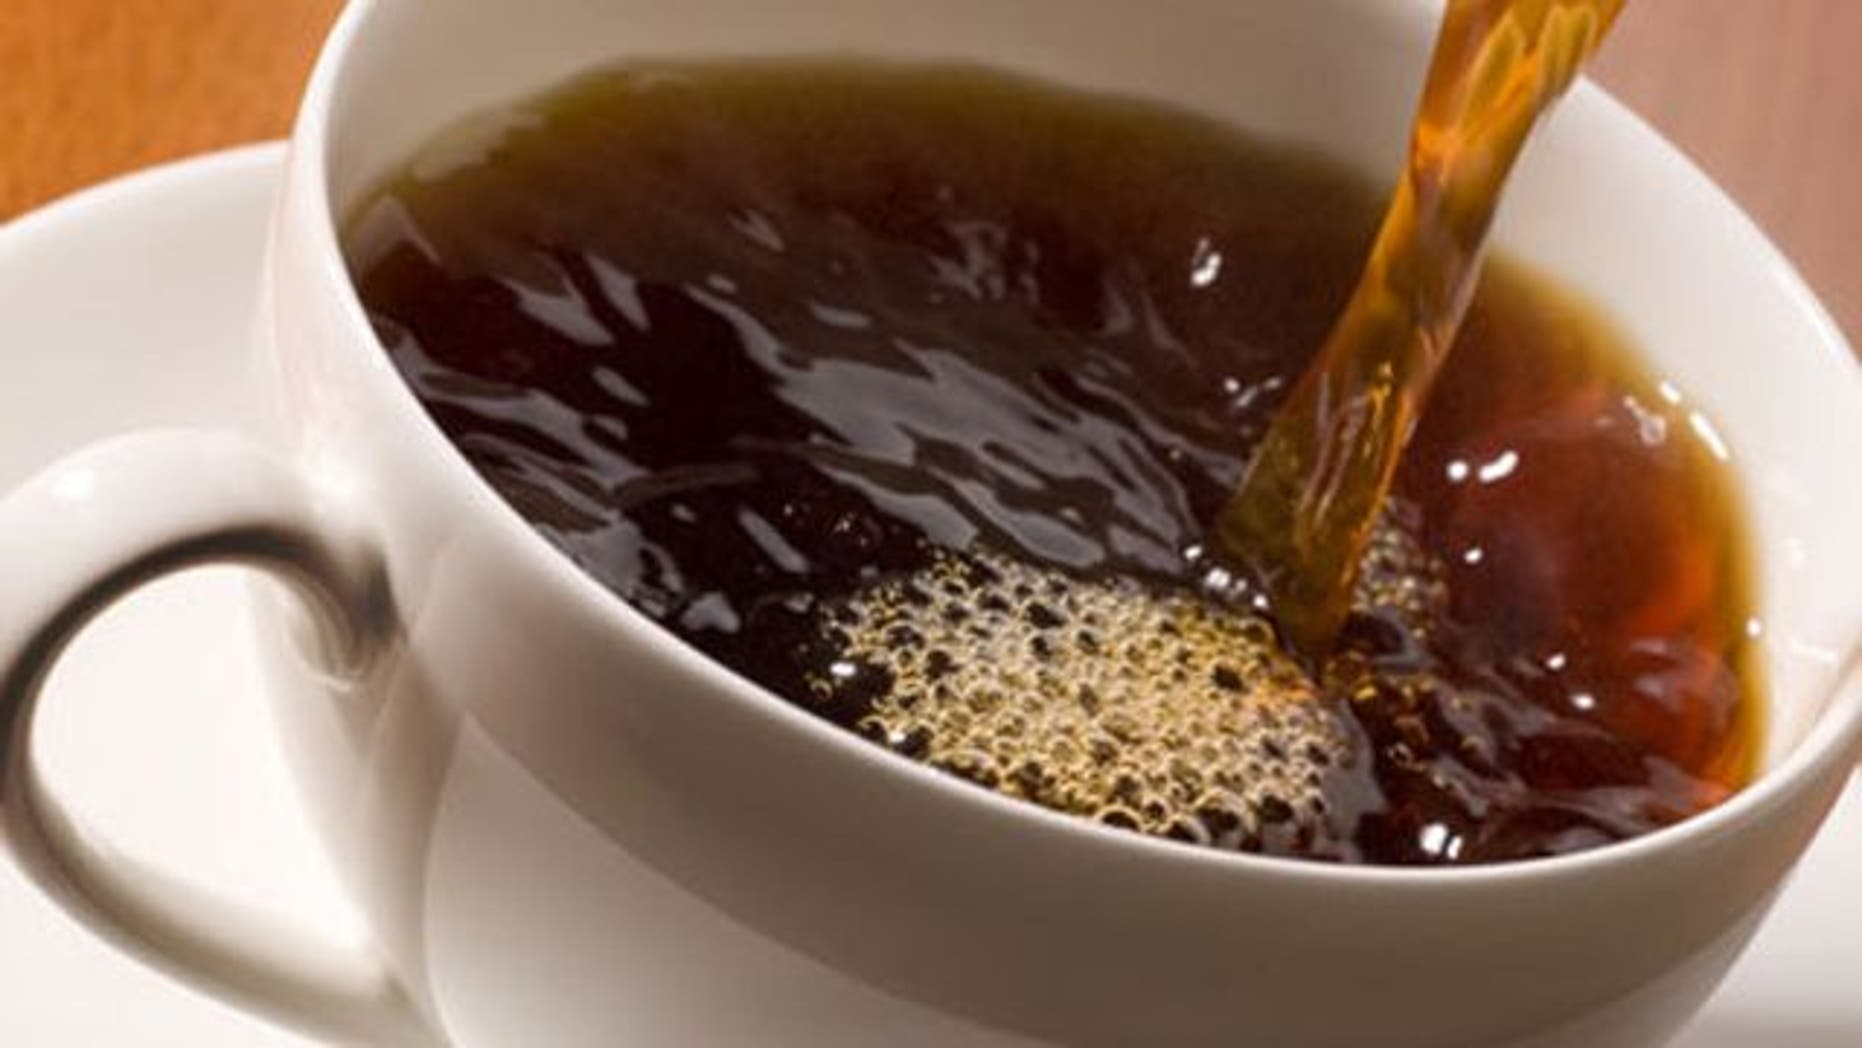 Florida couple use coffee enemas to cleanse colons 4 times a